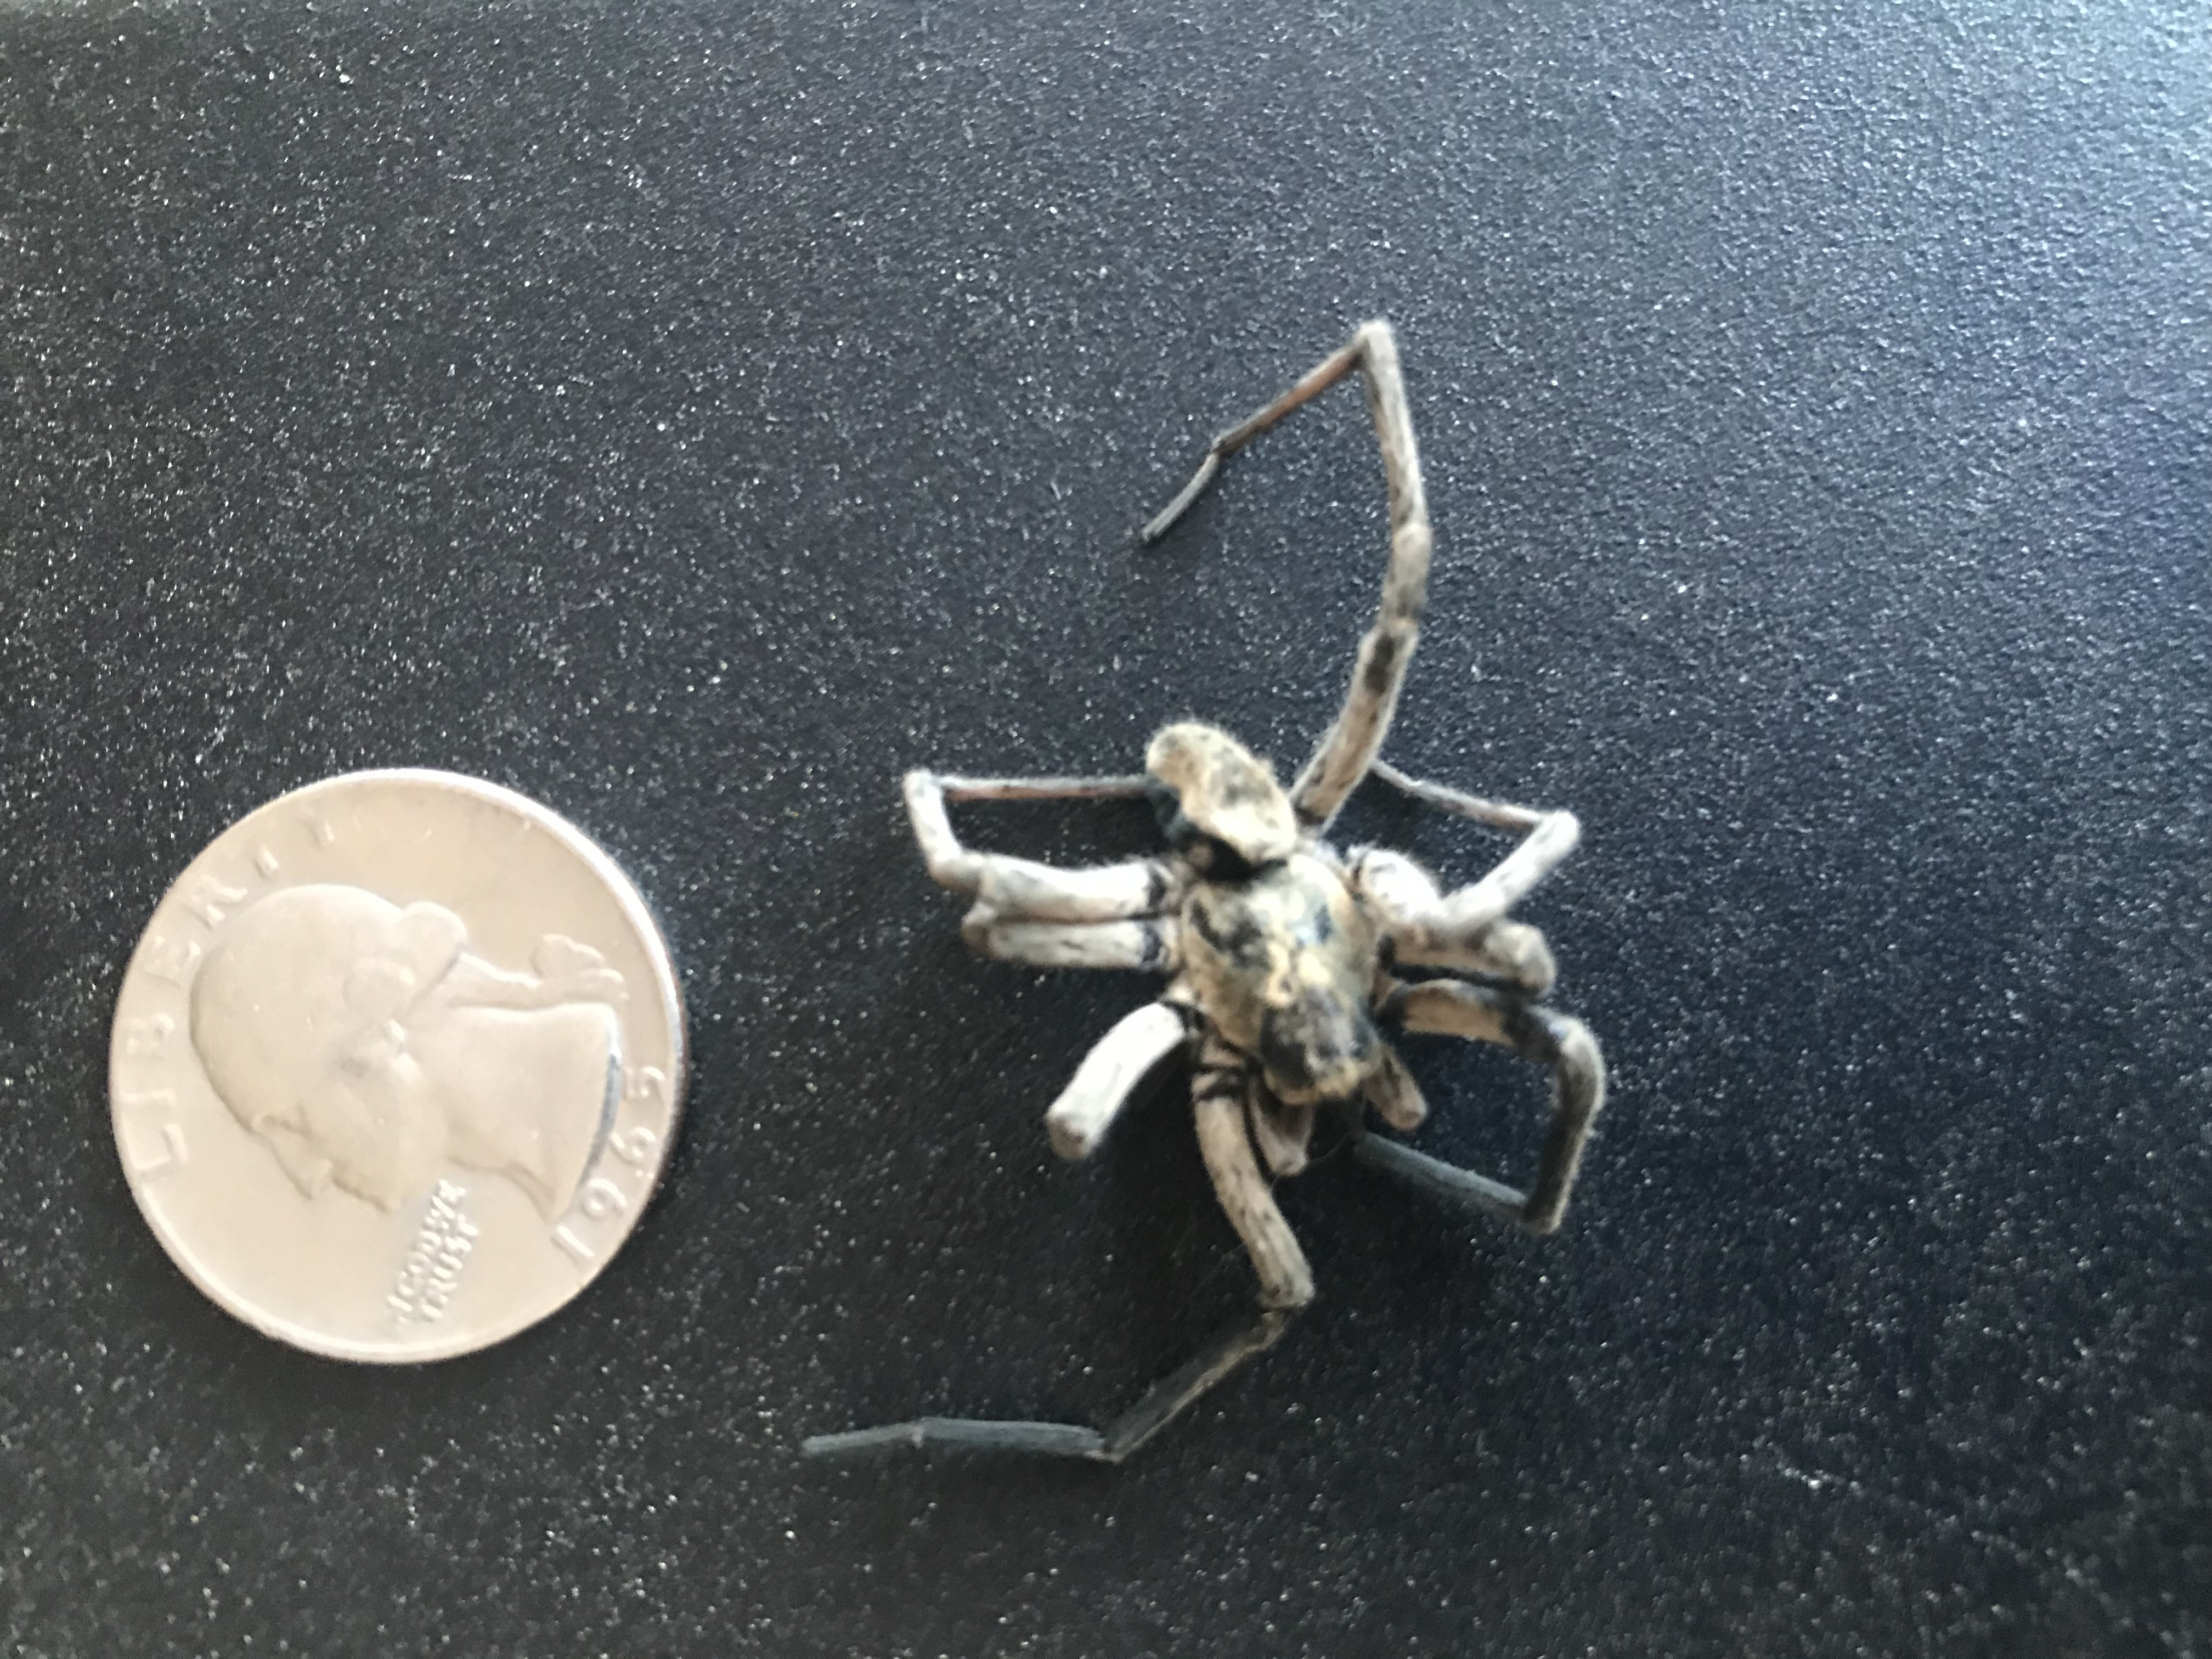 Picture of Geolycosa missouriensis - Male - Dorsal